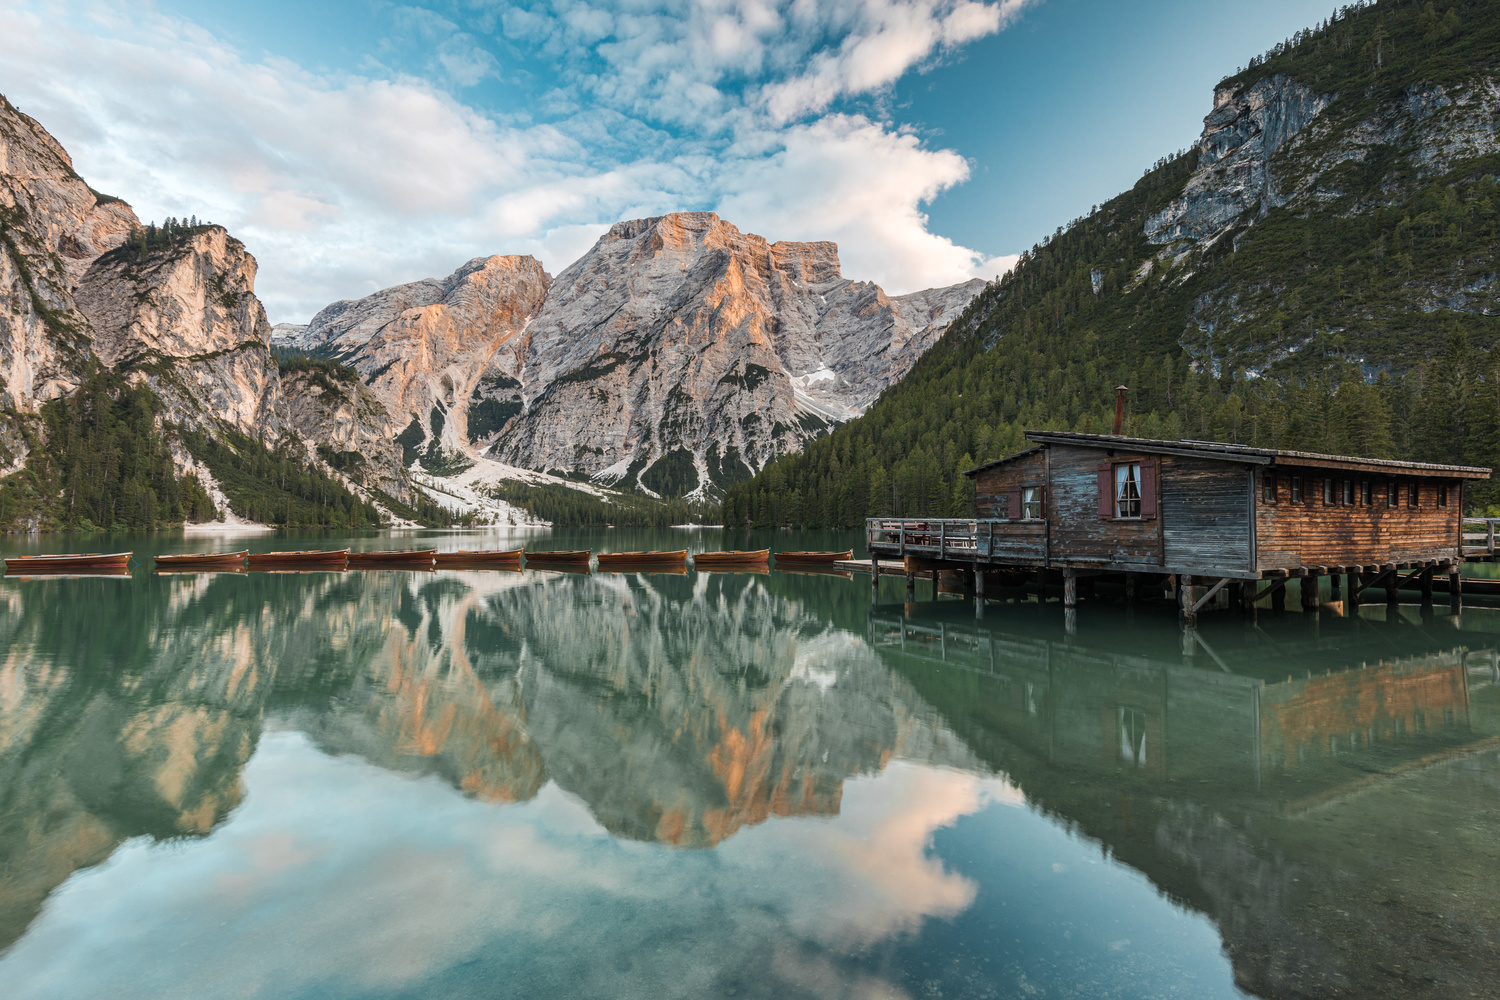 Boats on Lago di Braies by Mike Huberts